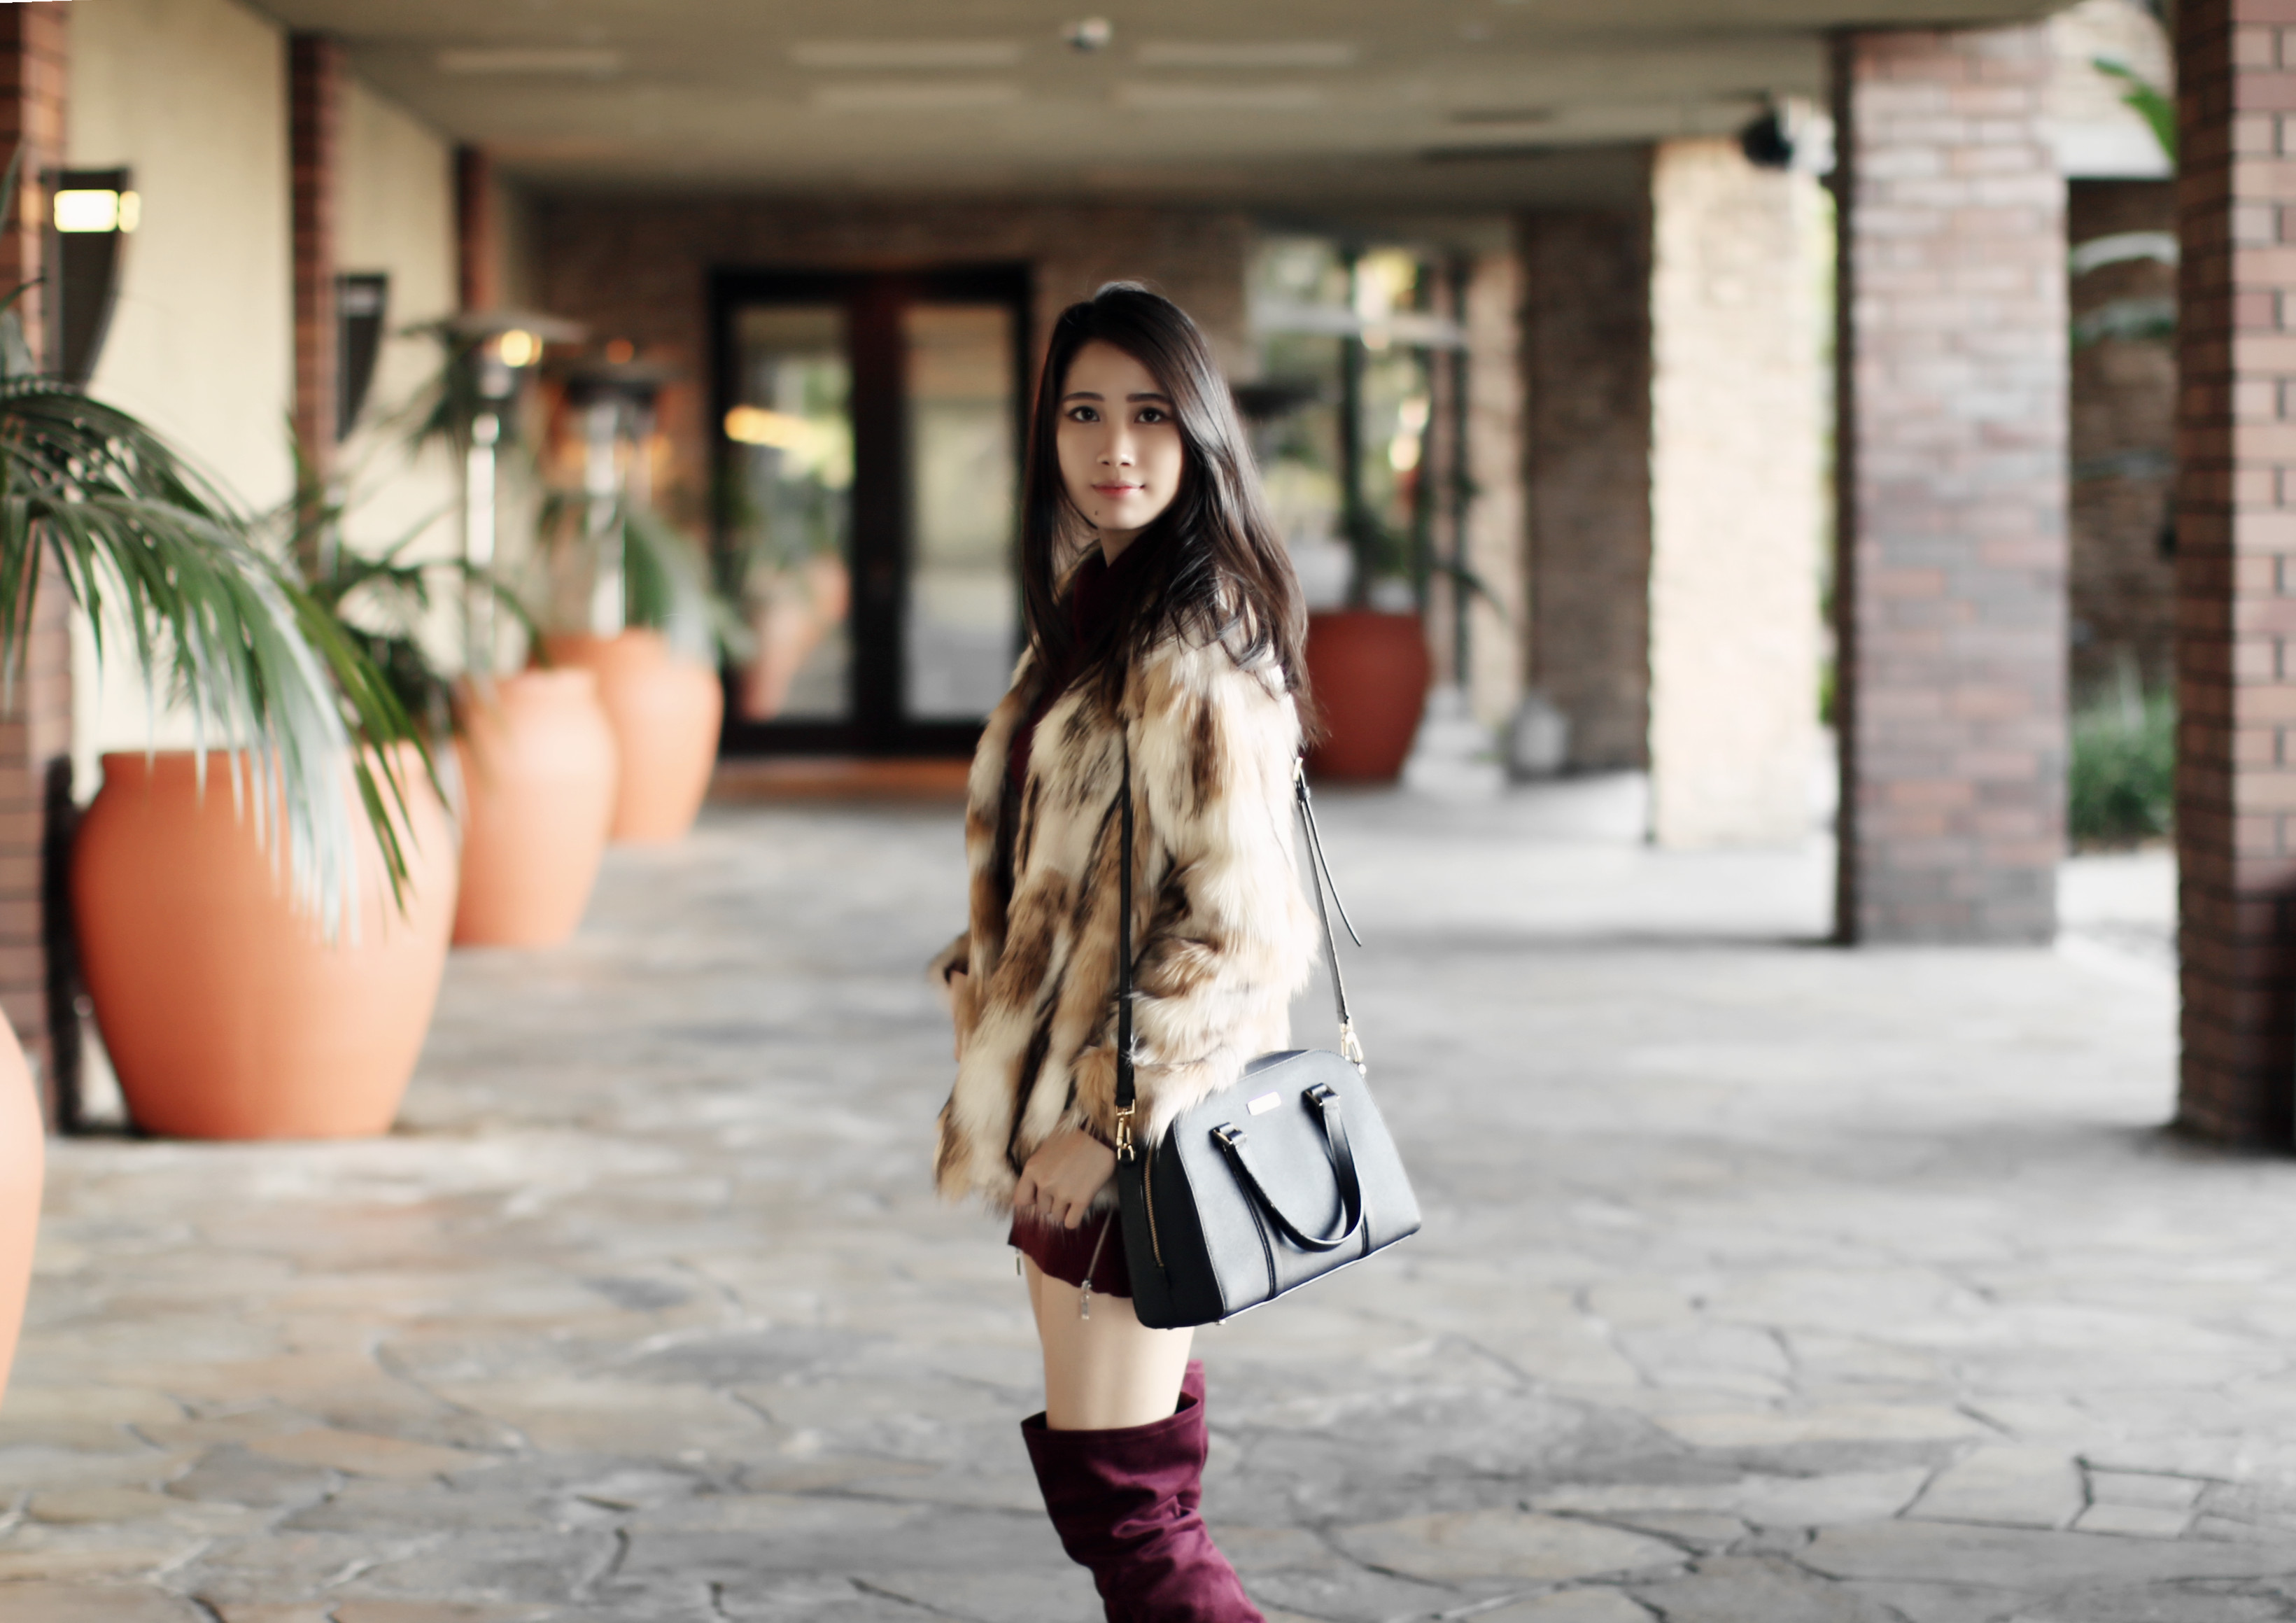 3760-ootd-fashion-style-outfitoftheday-wiwt-vincecamuto-fauxfur-otkboots-fallfashion-forever21-f21-hollister-koreanfashion-sponsored-elizabeeetht-clothestoyouuu